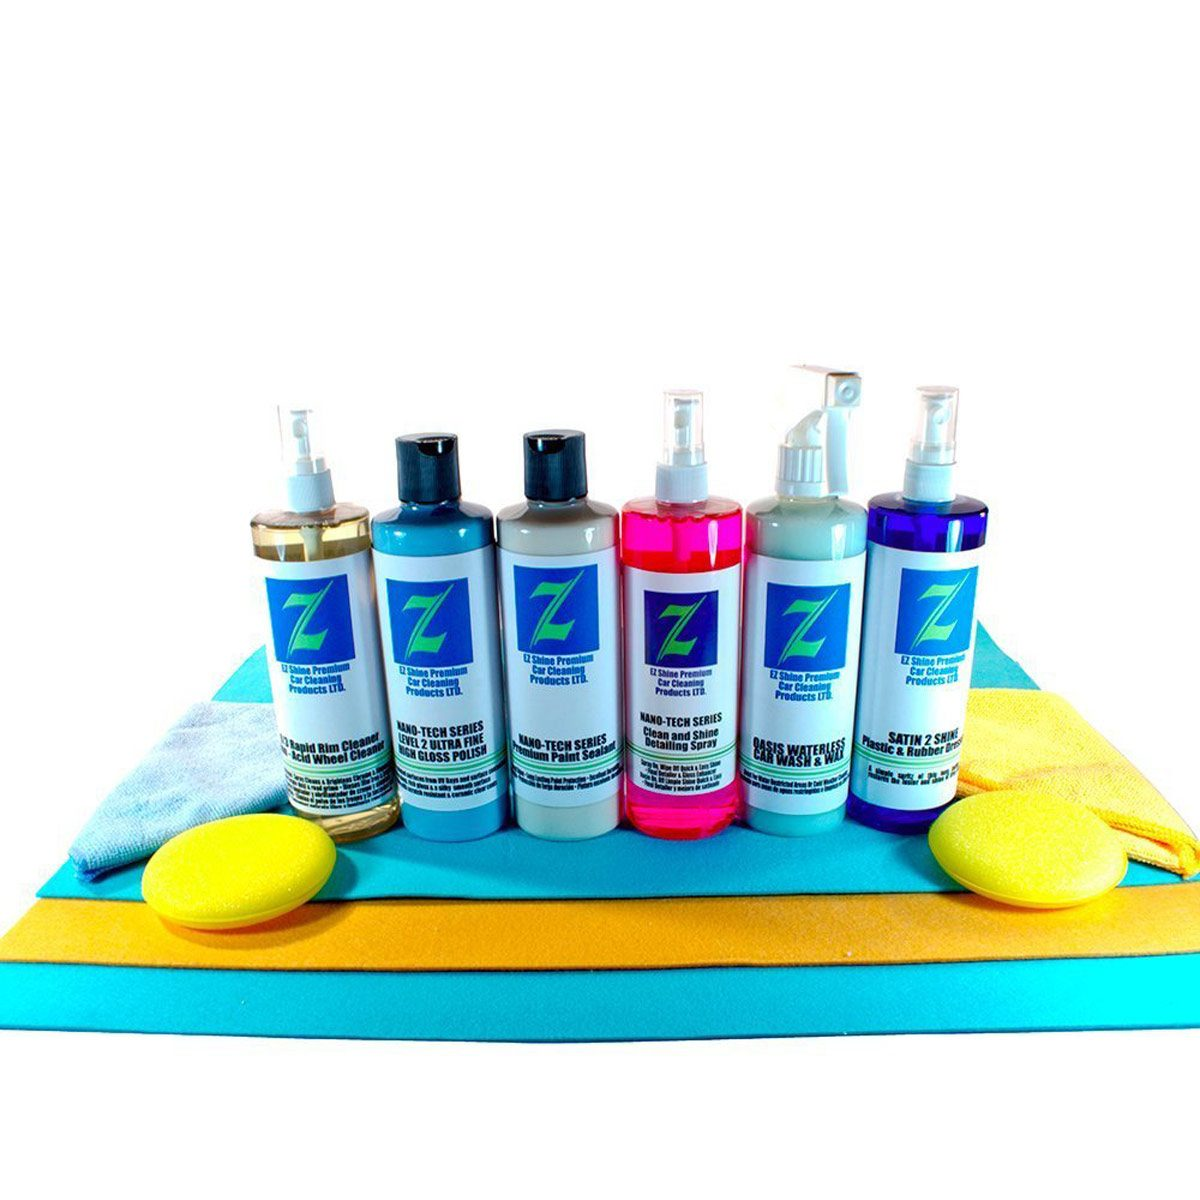 Top 10 Best Car Wash Kits for Showroom Quality | The Family Handyman